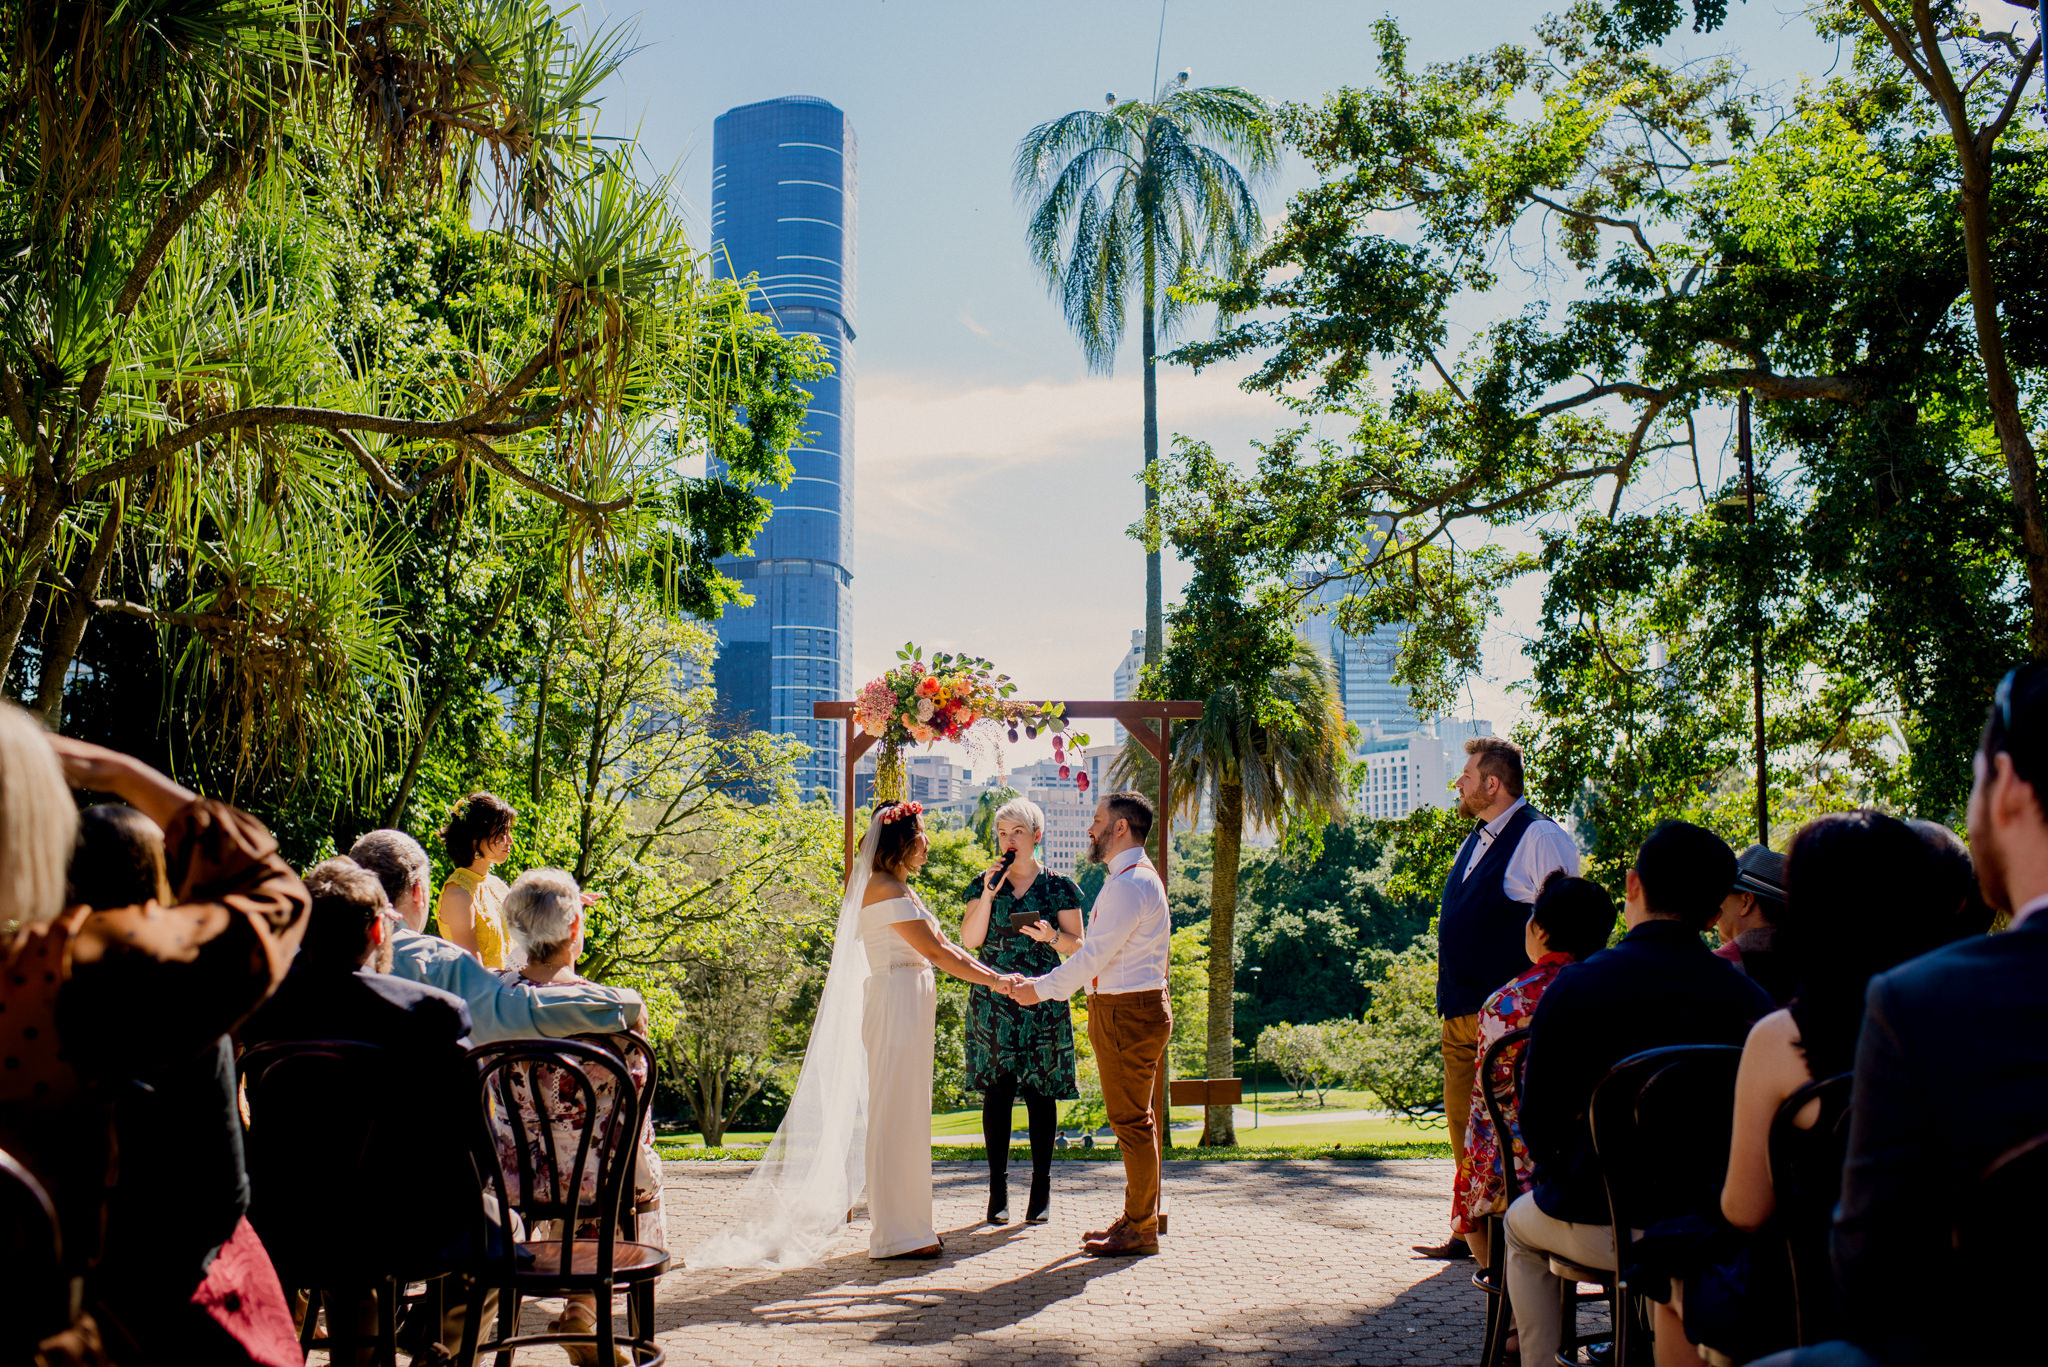 A wedding ceremony surrounded by trees at the Brisbane Botanic Gardens